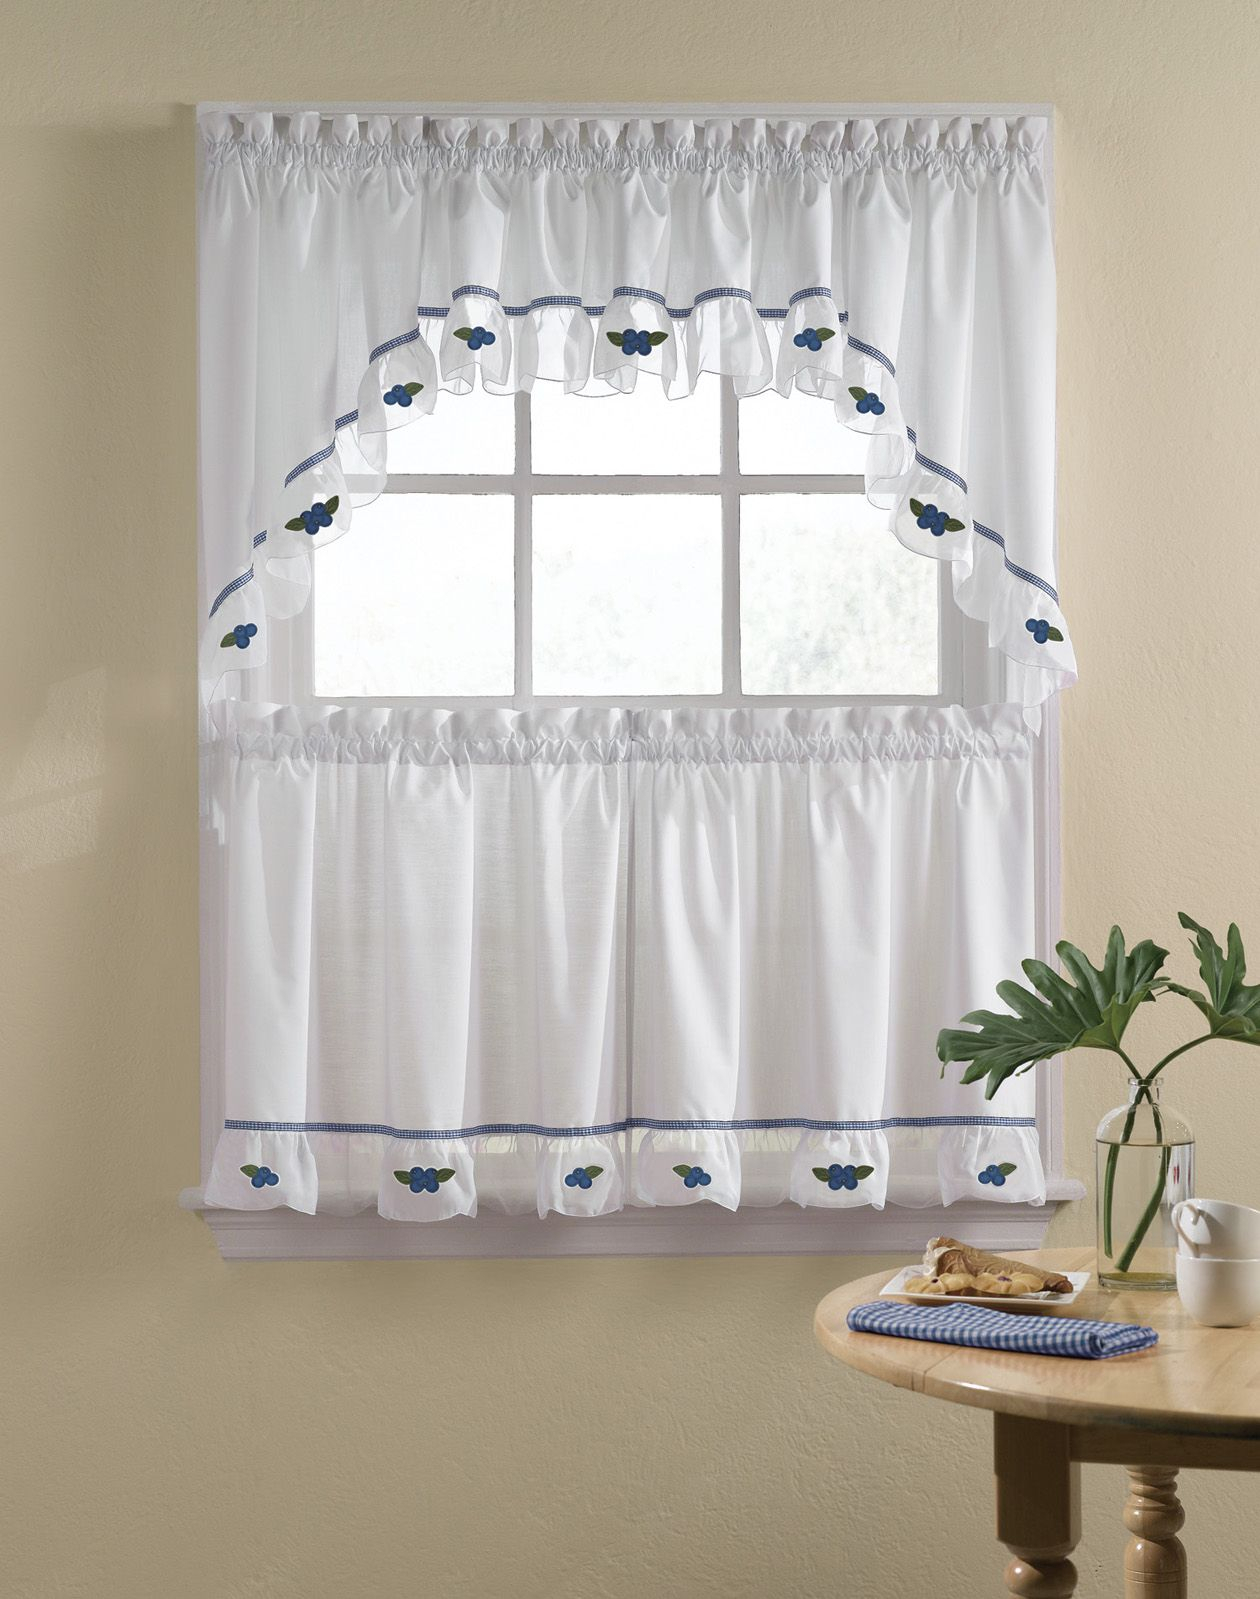 Blueberries 5 Piece Kitchen Curtain Tier Set / Curtainworks Inside Cotton Lace 5 Piece Window Tier And Swag Sets (View 7 of 20)